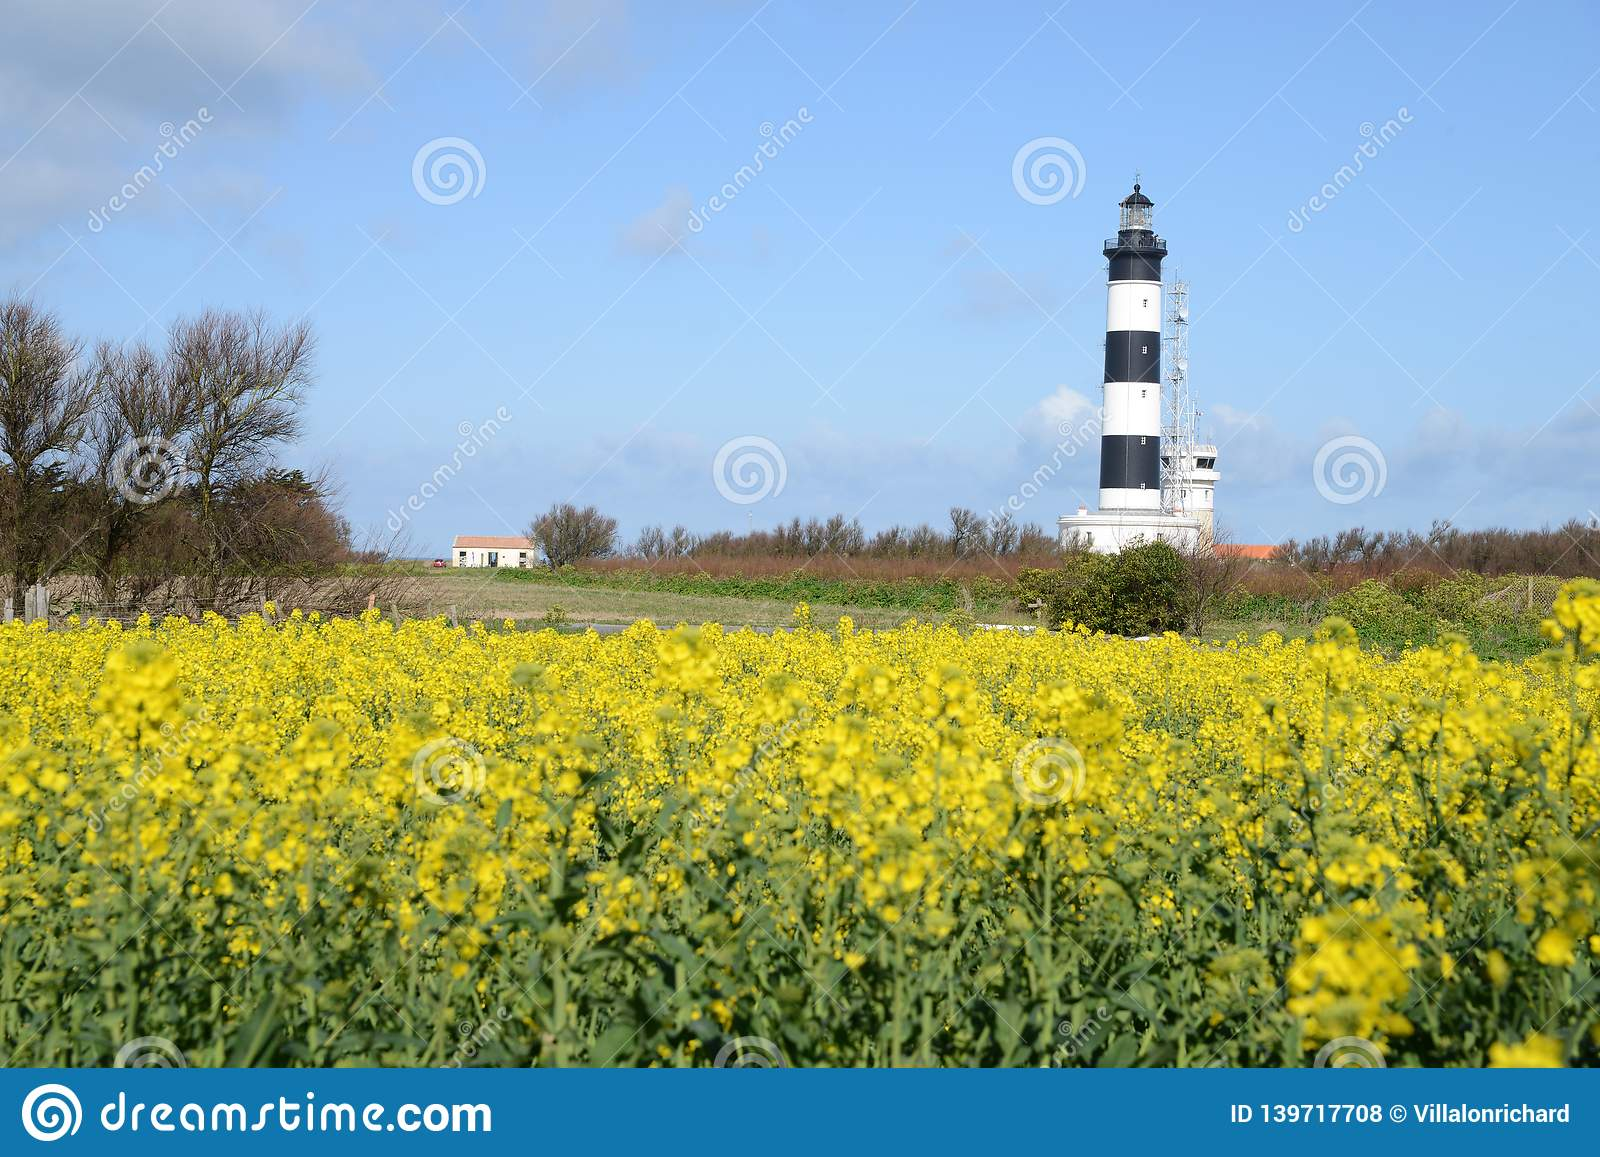 Chassiron lighthouse on the island of Oléron